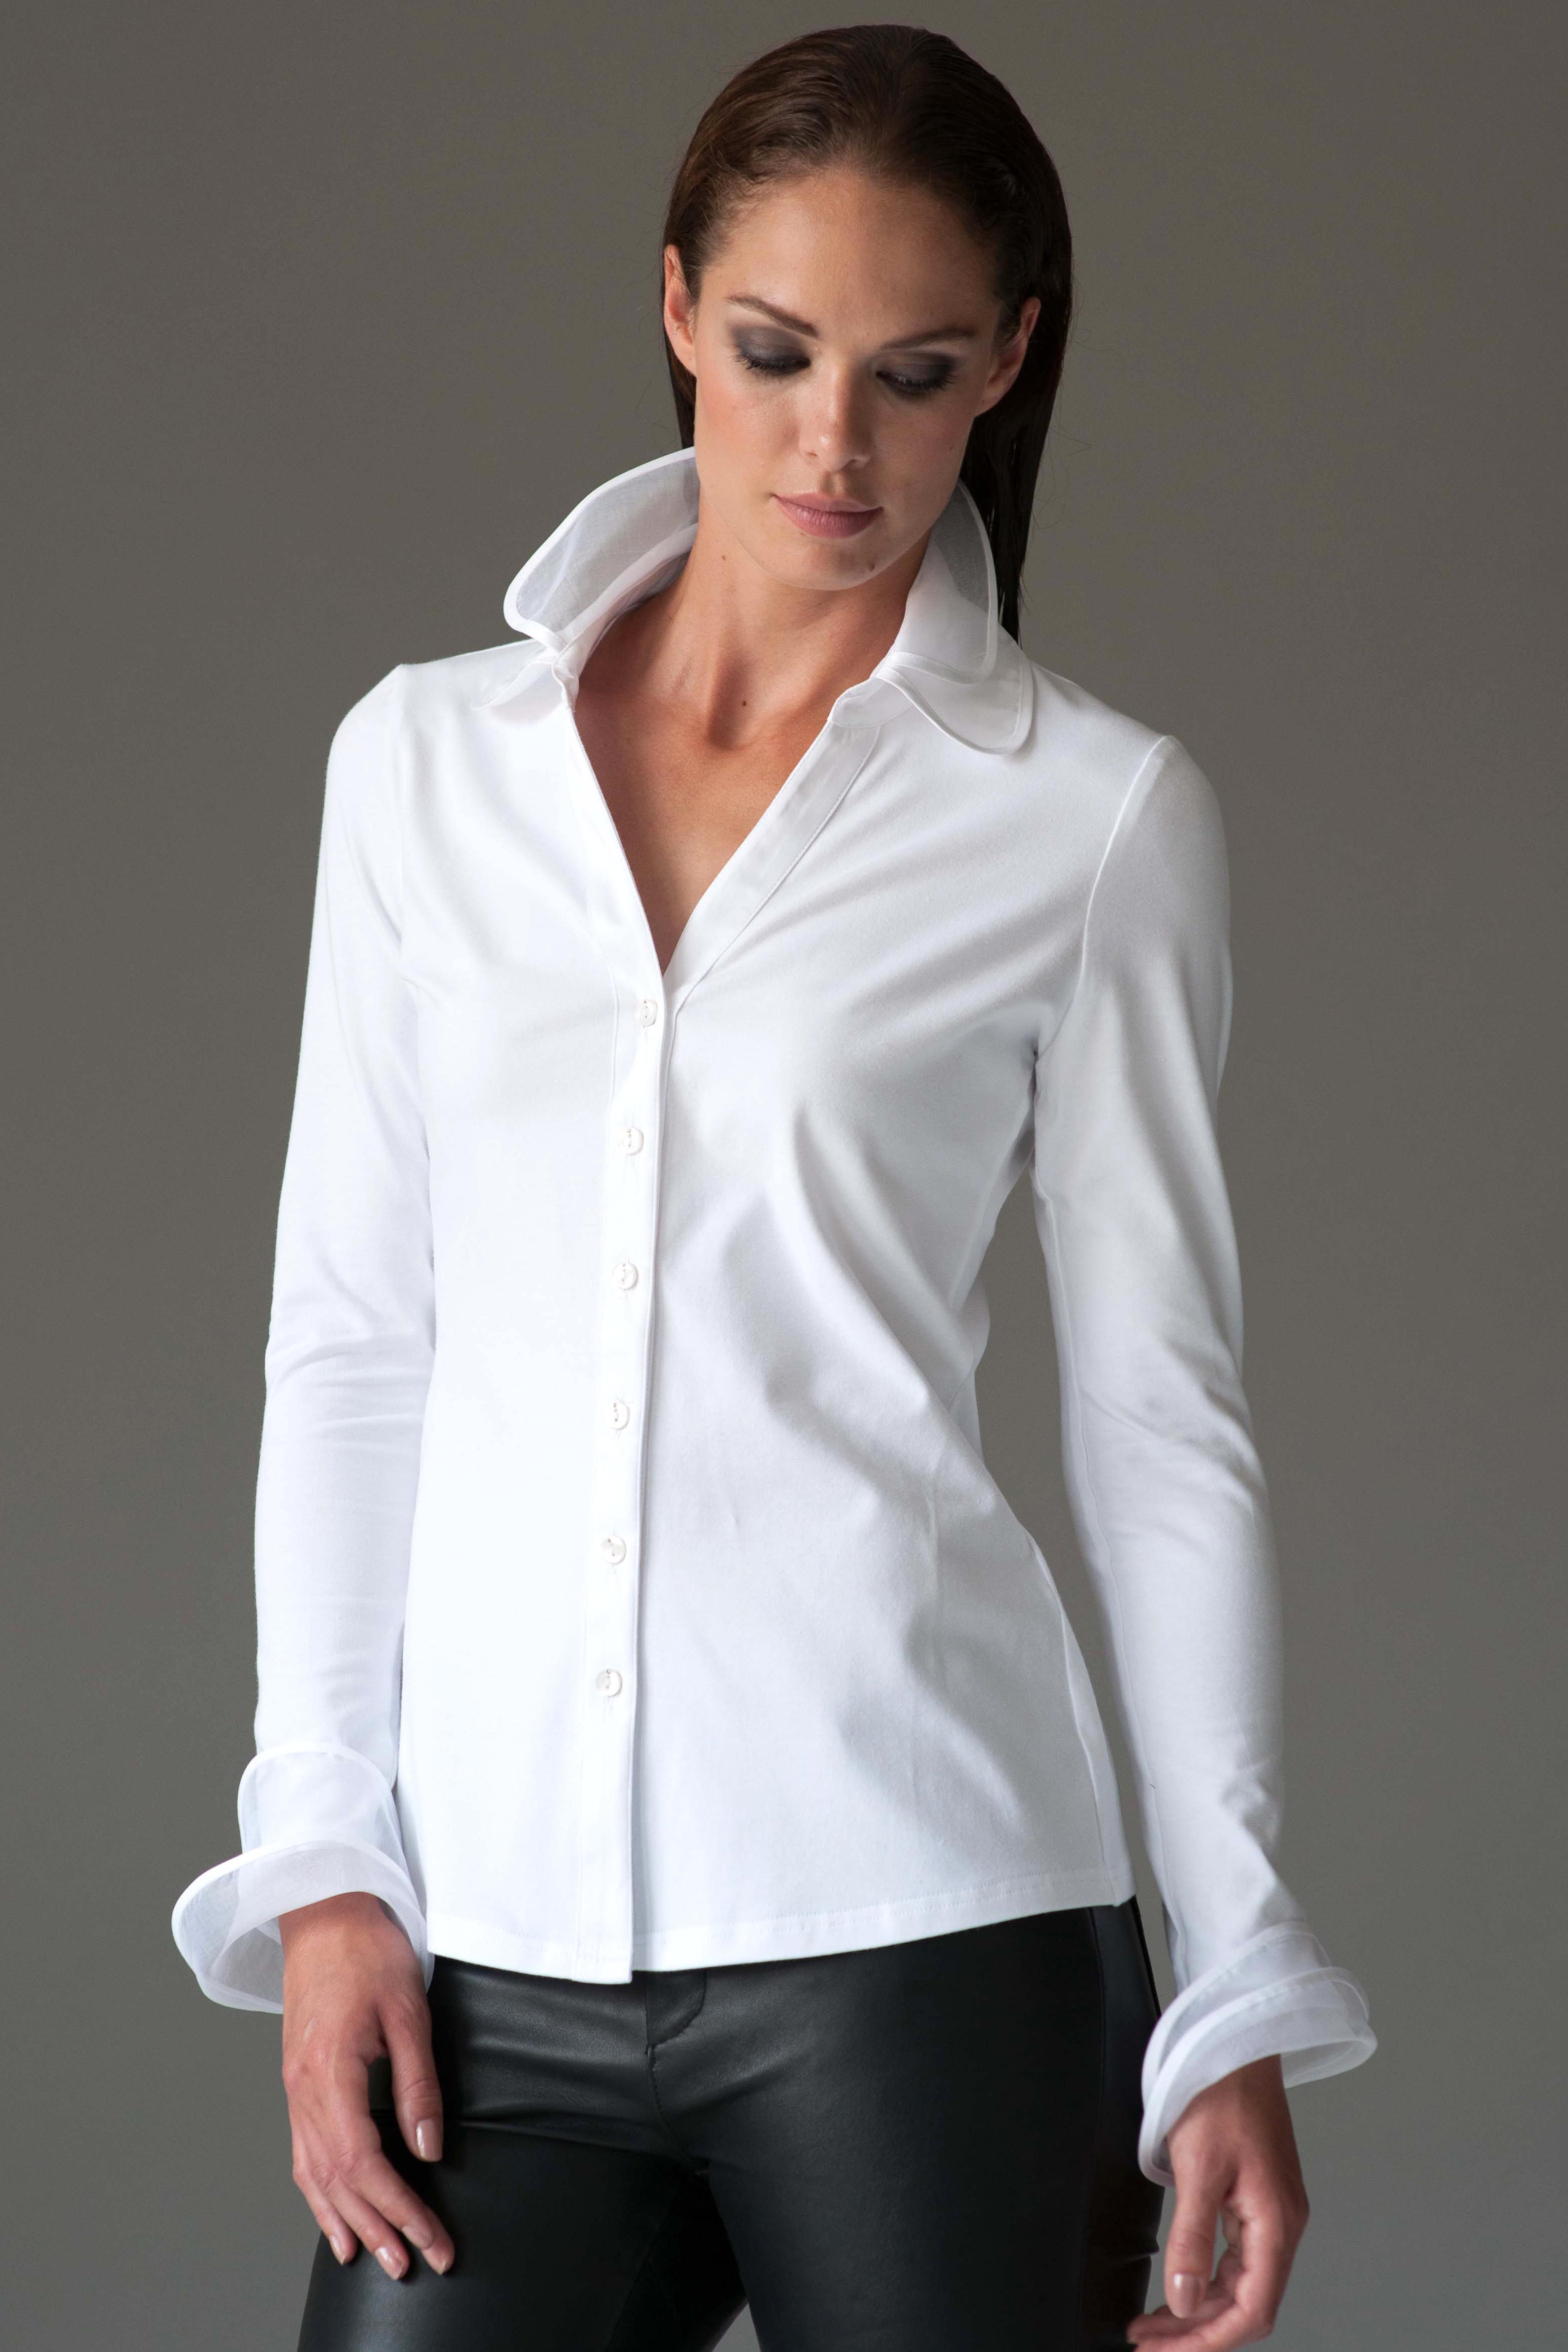 1620bdc3cc2 The Shirt Company  the perfect white shirt for women